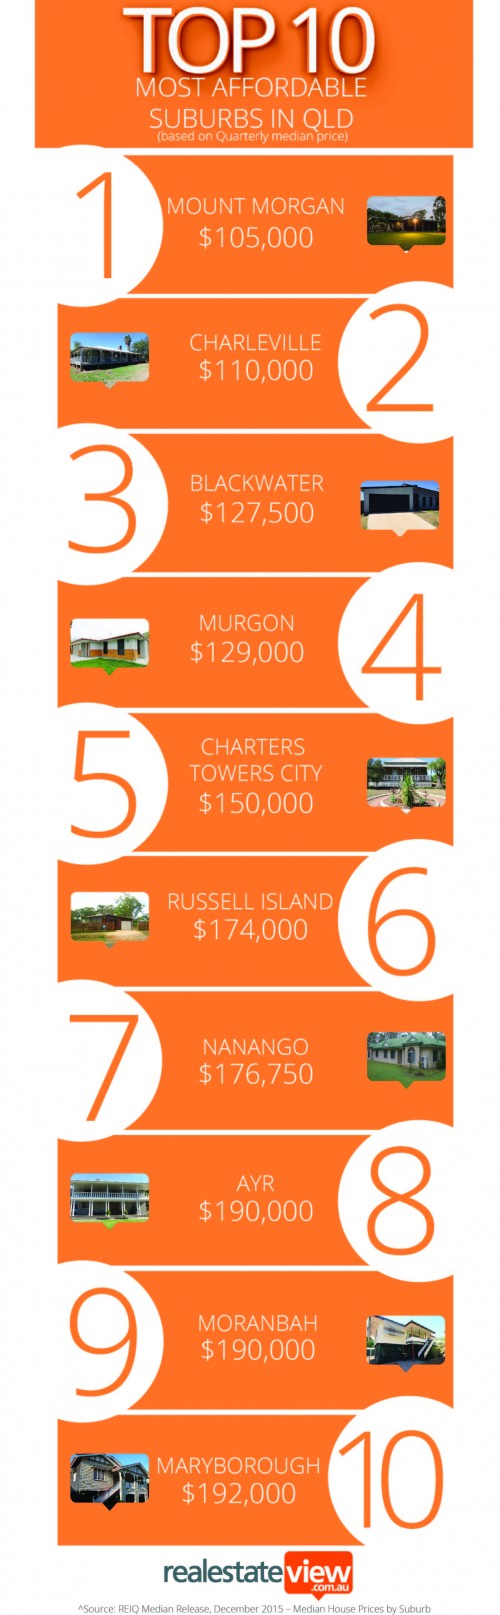 Top10 most affordableQLD